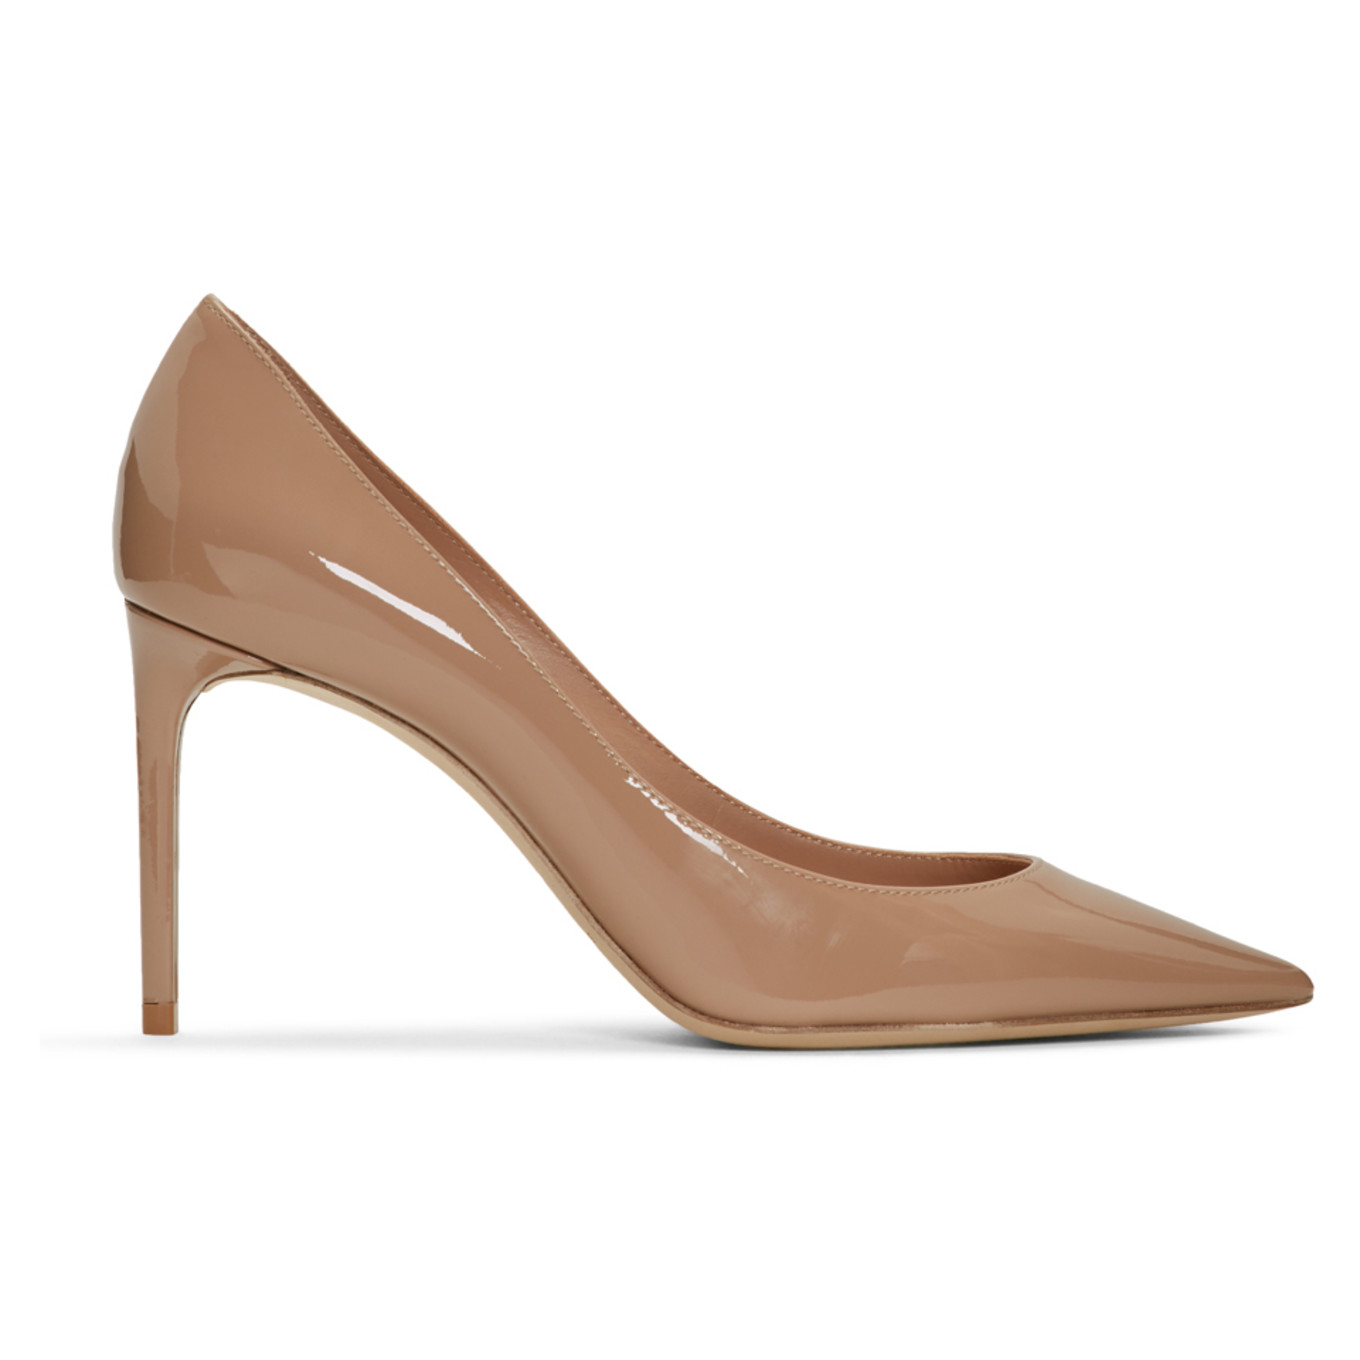 Pink Patent Zoe Pumps by Saint Laurent, available on ssense.com for $625 Kylie Jenner Shoes Exact Product